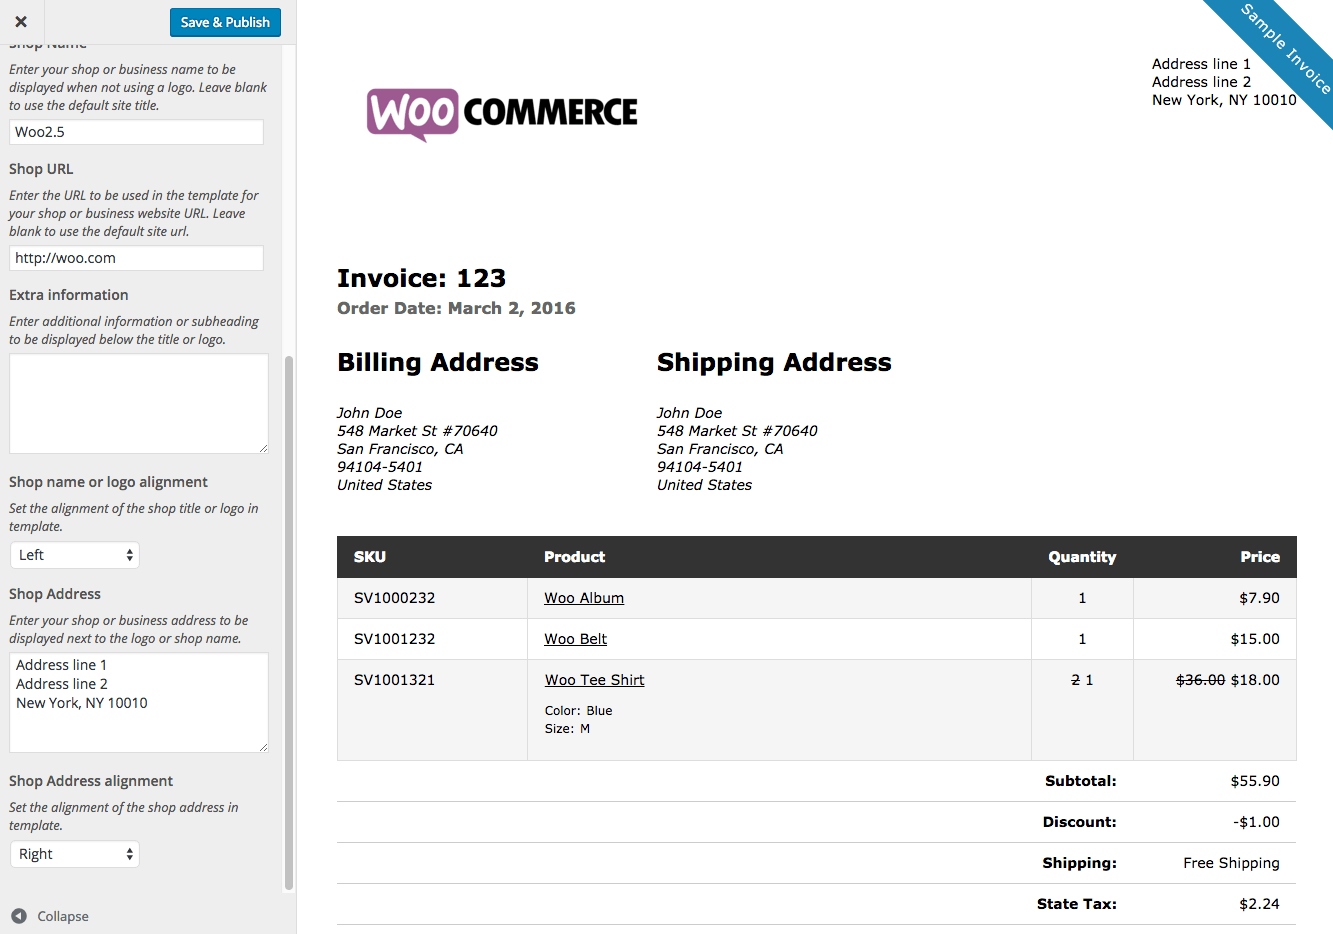 Ultrablogus  Prepossessing Woocommerce Print Invoices Amp Packing Lists  Woocommerce Docs With Marvelous Woocommerce Print Invoices  Packing Lists Customizer With Beautiful Upon Receipt Definition Also Receipt For Car Sale In Addition Residual Receipts And Need A Receipt As Well As Receipt Scanner App Iphone Additionally Receipt Filer From Docswoocommercecom With Ultrablogus  Marvelous Woocommerce Print Invoices Amp Packing Lists  Woocommerce Docs With Beautiful Woocommerce Print Invoices  Packing Lists Customizer And Prepossessing Upon Receipt Definition Also Receipt For Car Sale In Addition Residual Receipts From Docswoocommercecom